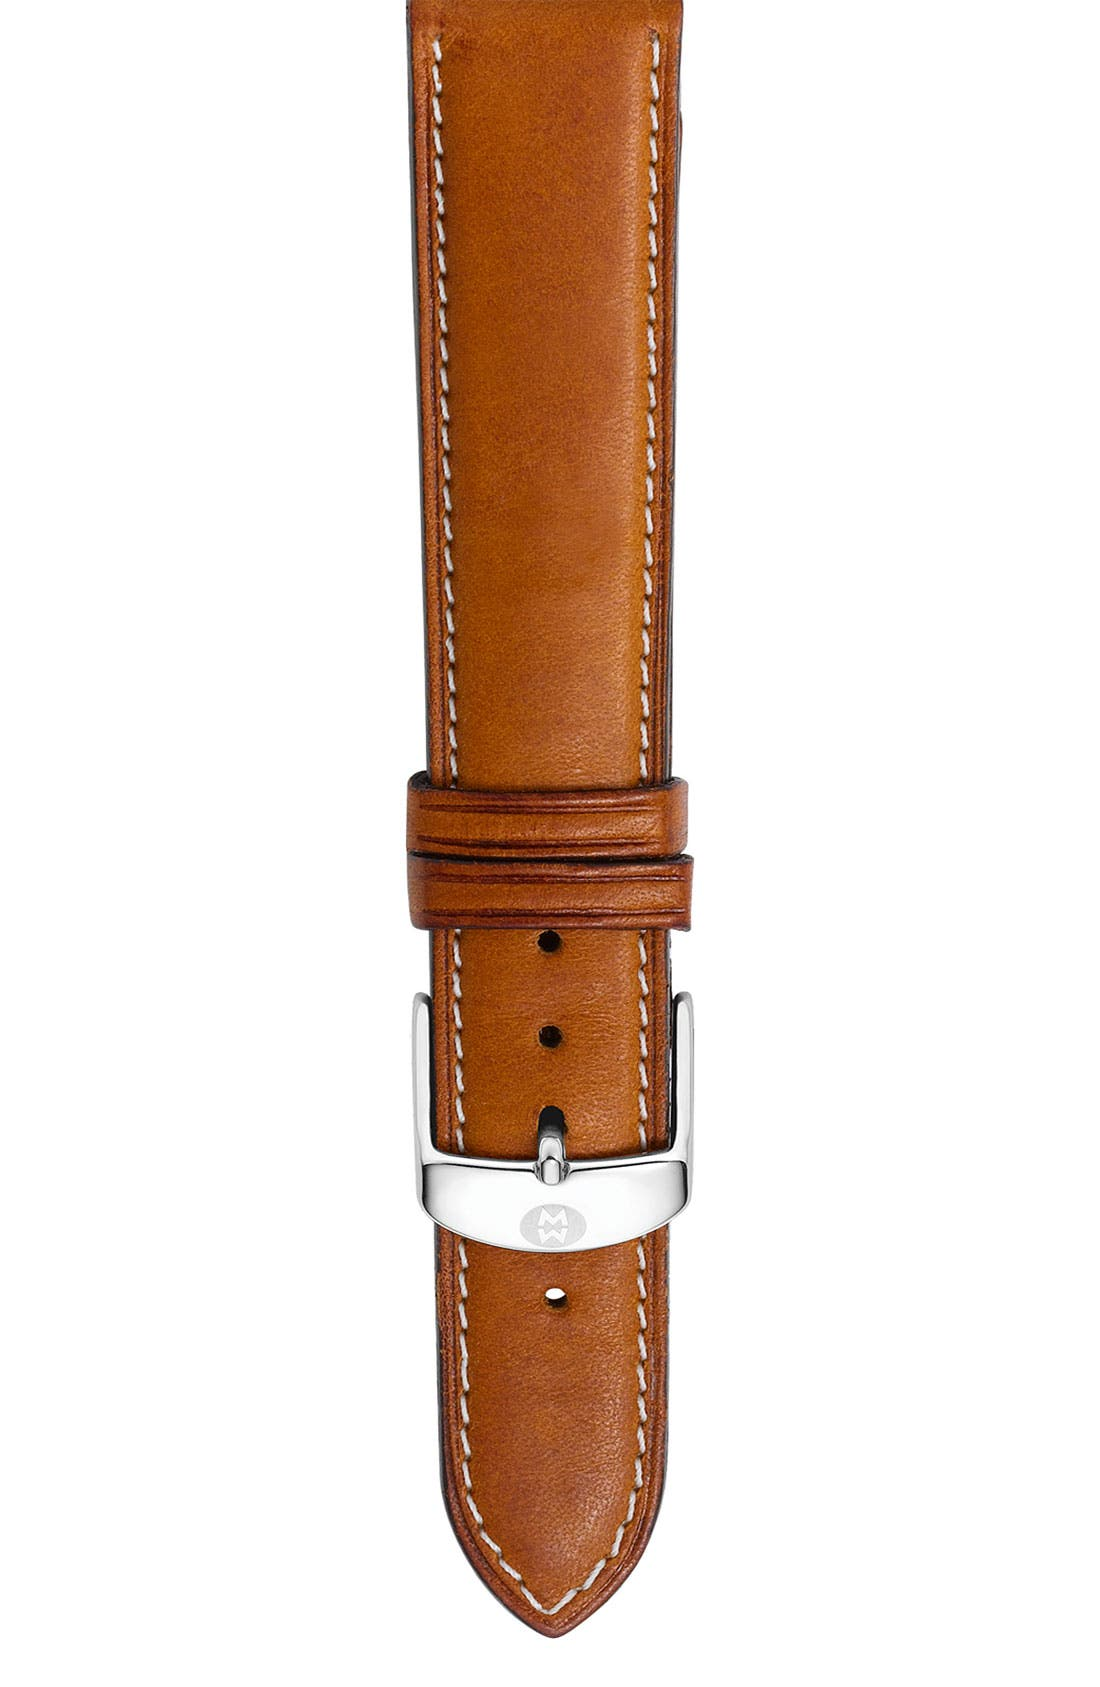 16mm Calfskin Leather Watch Strap,                         Main,                         color, Saddle